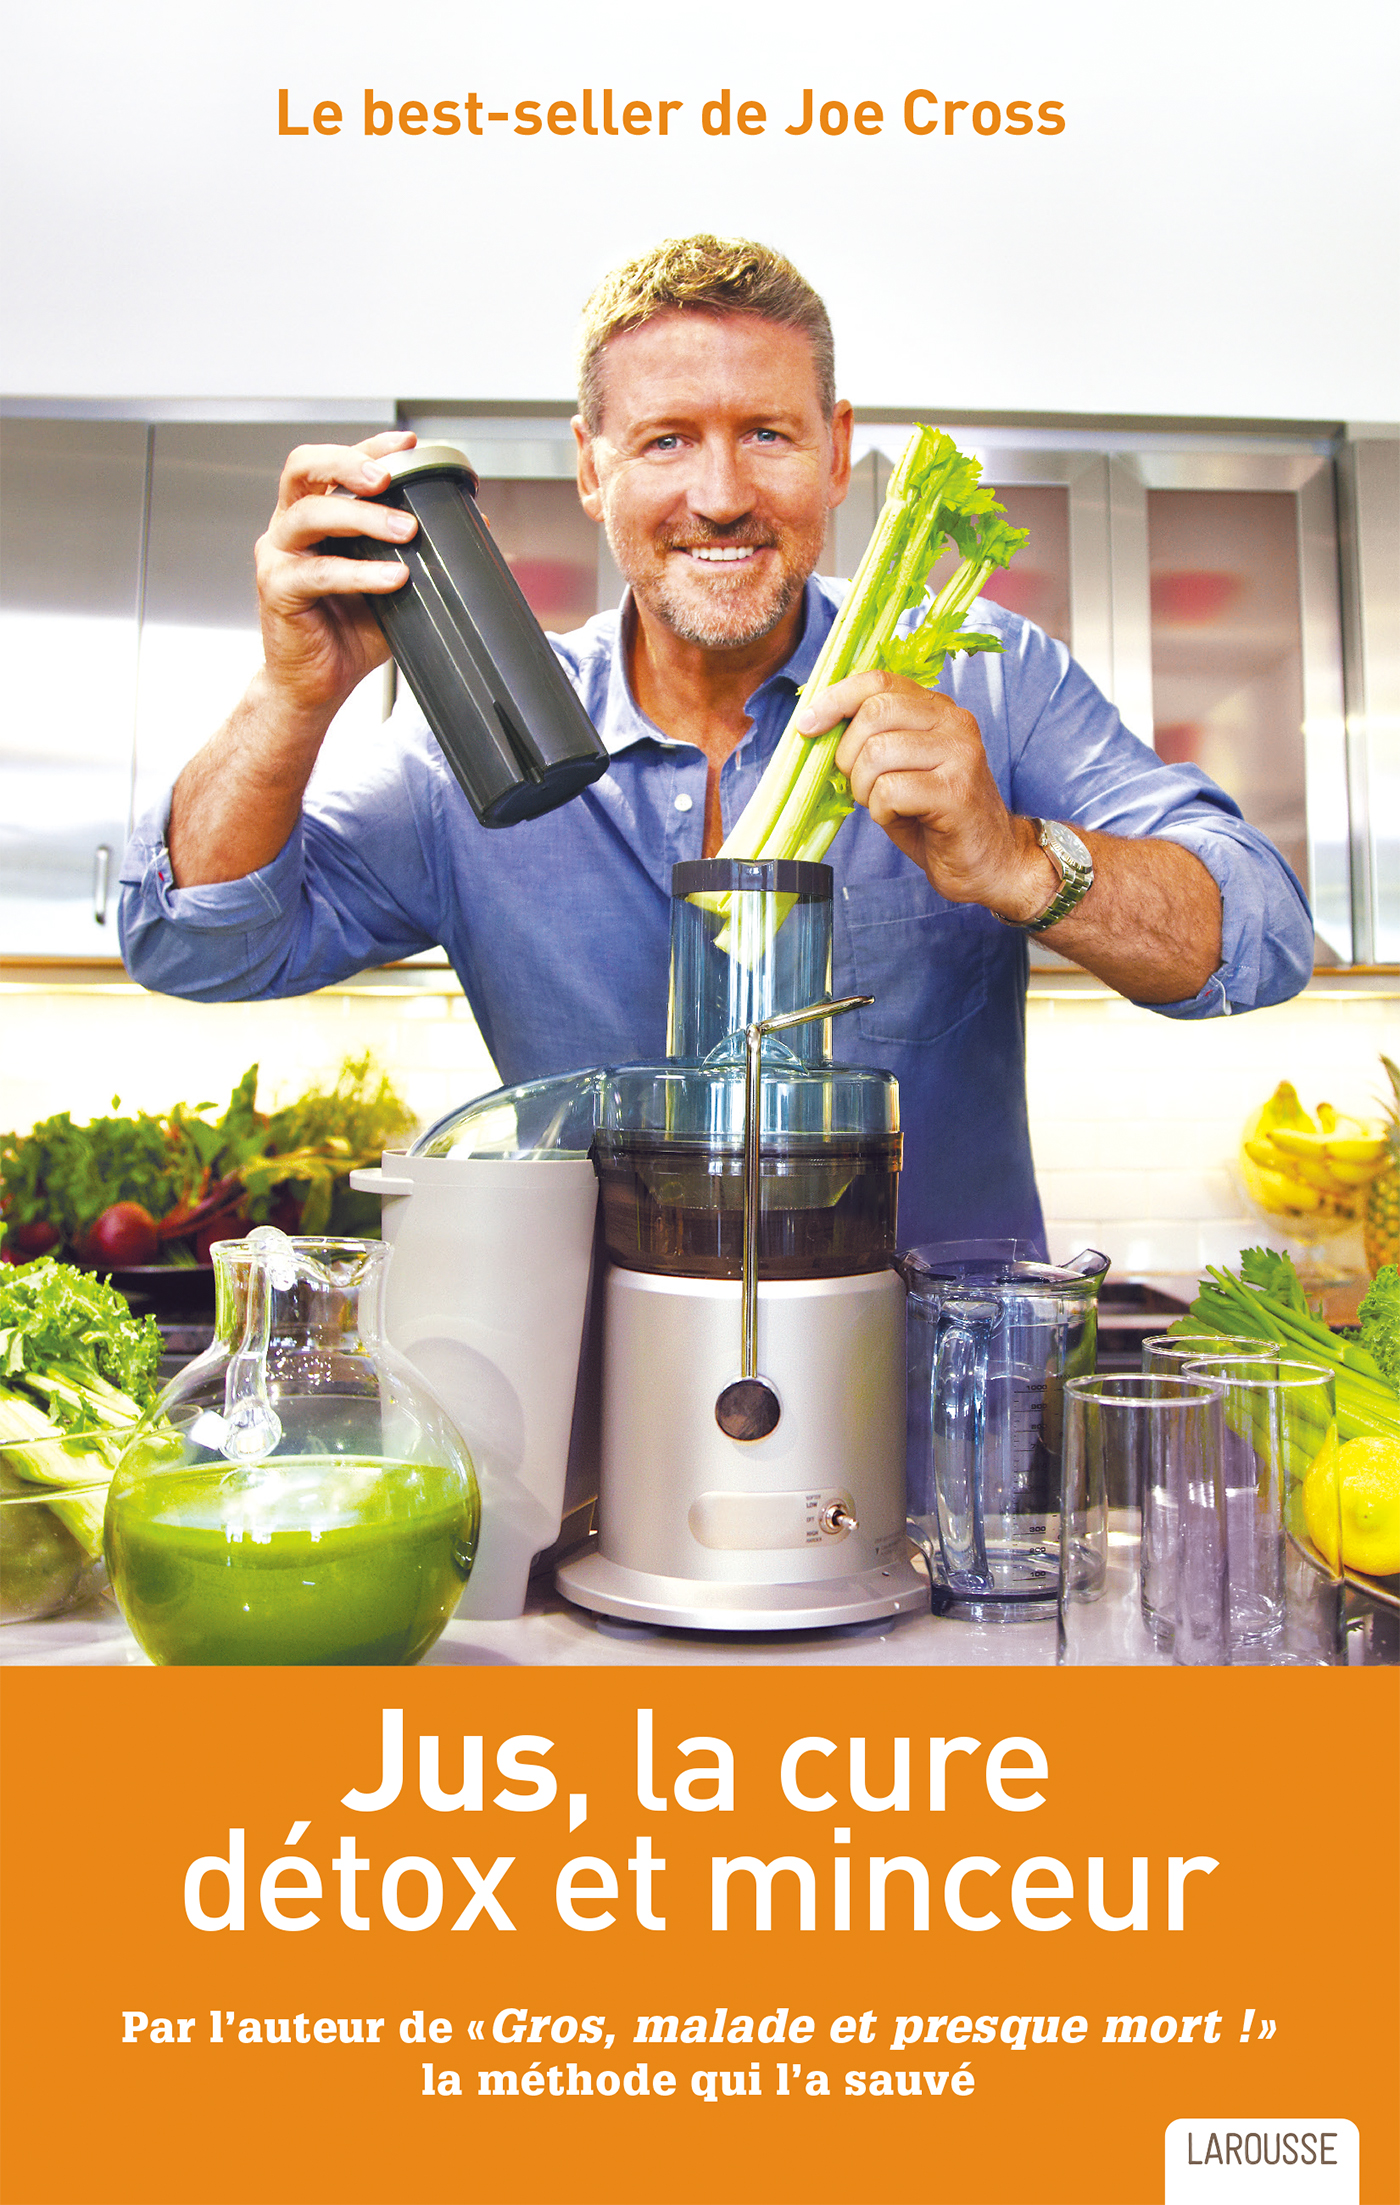 Detox Minceur Joe Cross